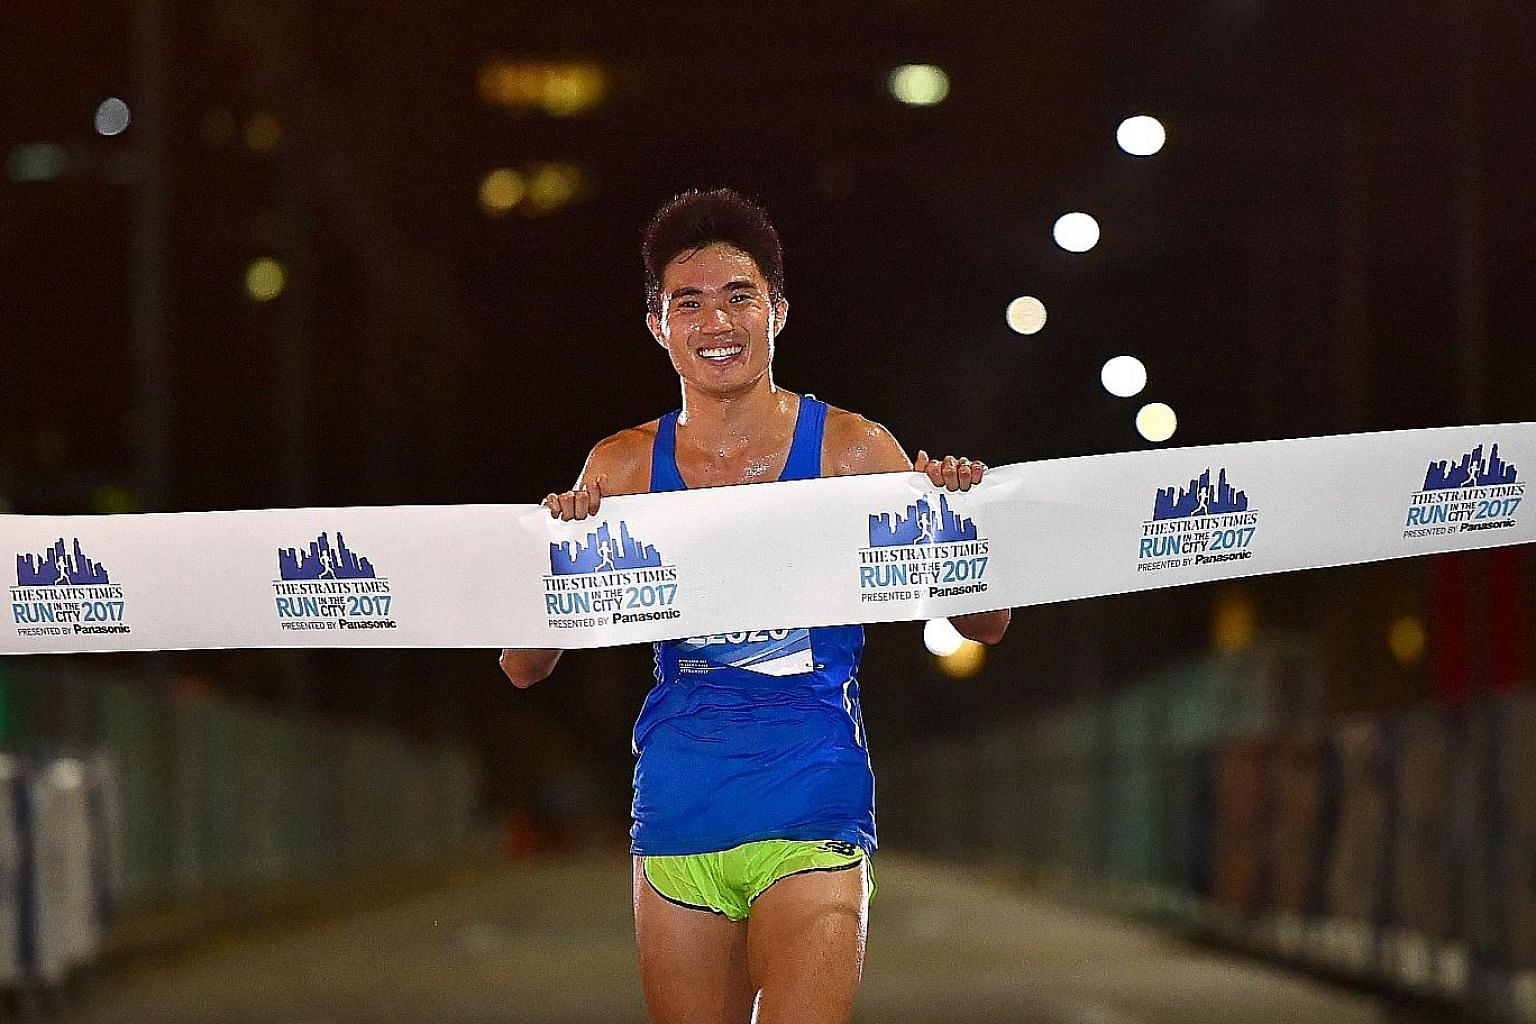 Mok Ying Ren finishing third at The Straits Times Run in the City 2017 in 1hr 4min 15sec in the 18.45km event. Singapore's two-time SEA Games gold medallist will helm the training programme for the second year running.